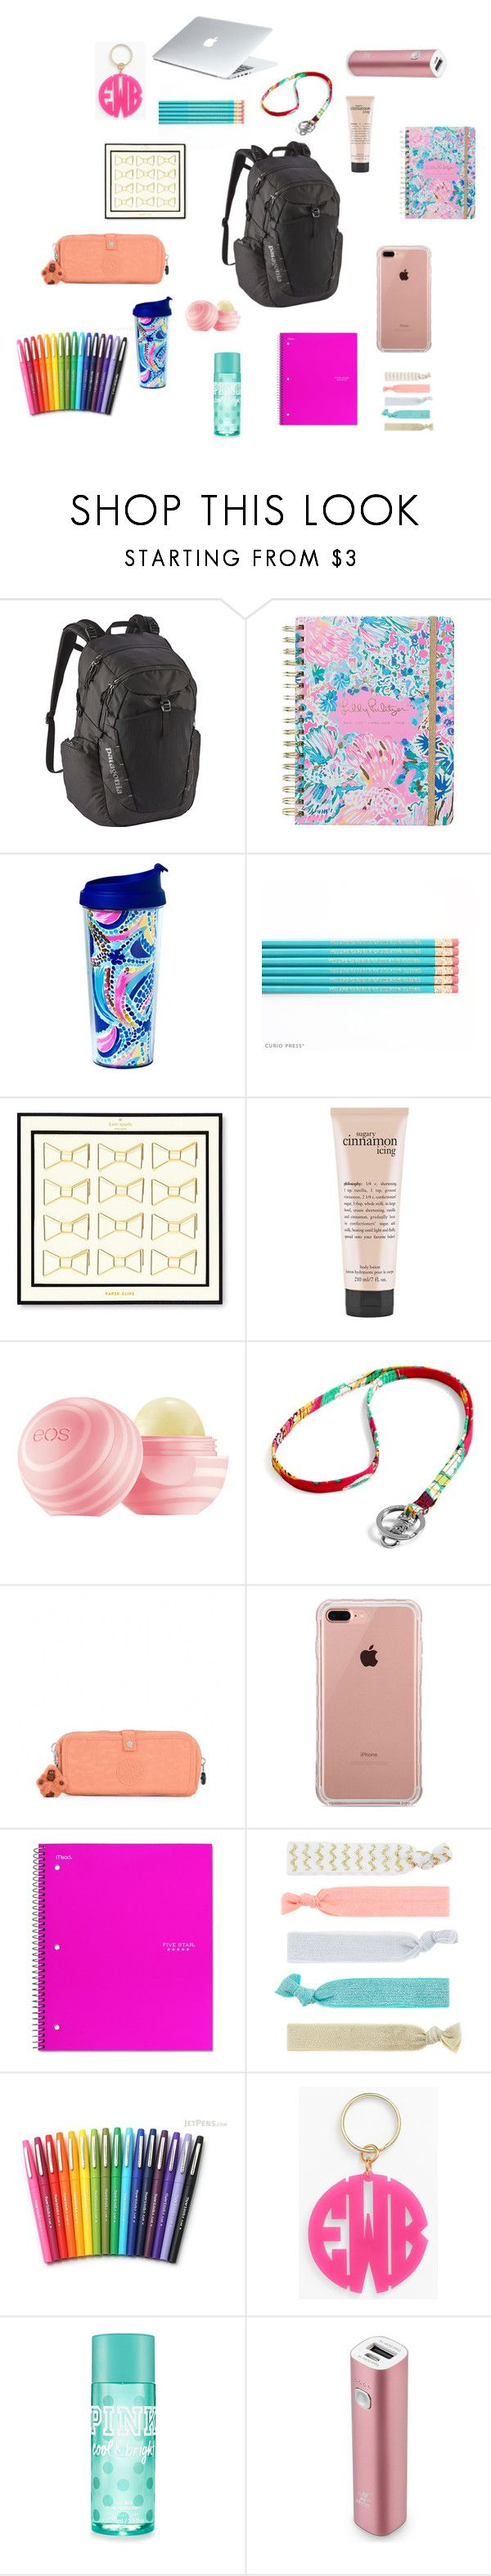 """""""College Book Bag"""" by trinitystover on Polyvore featuring Patagonia, Lilly Pulitzer, Kate Spade, philosophy, Vera Bradley, Kipling, Belkin, Accessorize, Paper Mate and Moon and Lola"""